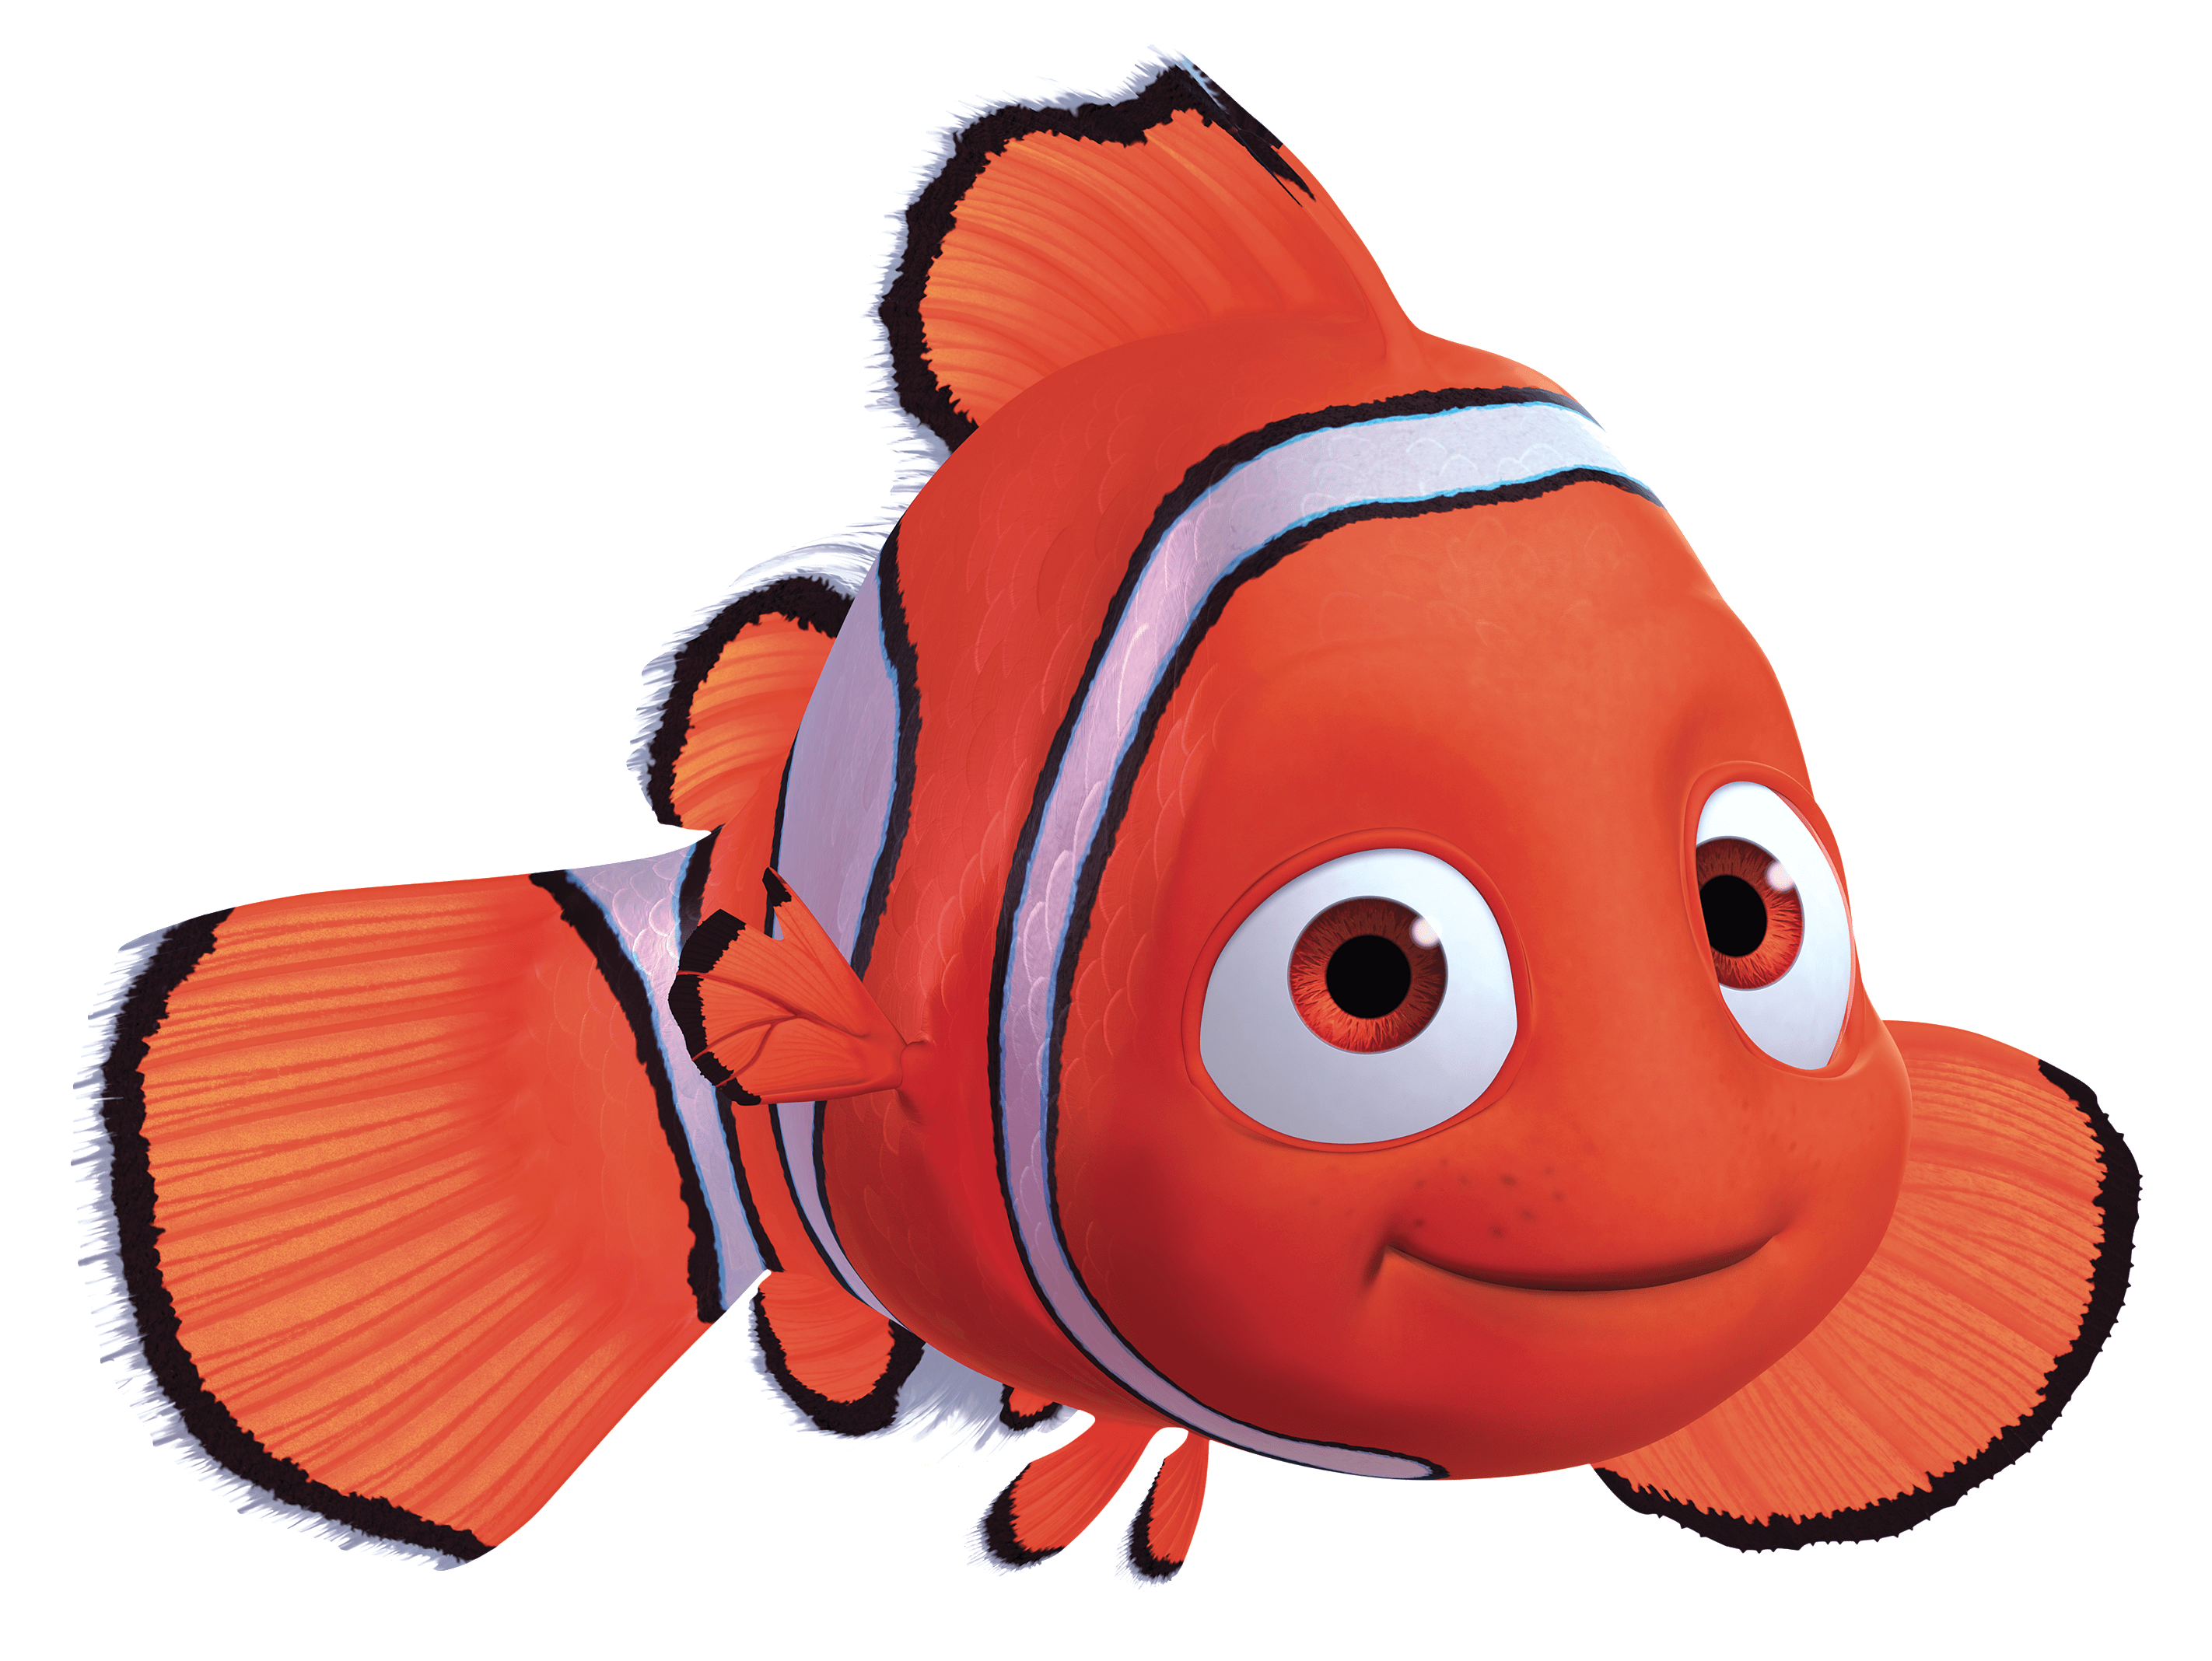 Hd Nemo Png - Finding Nemo PNG Transparent Finding Nemo.PNG Images. | PlusPNG